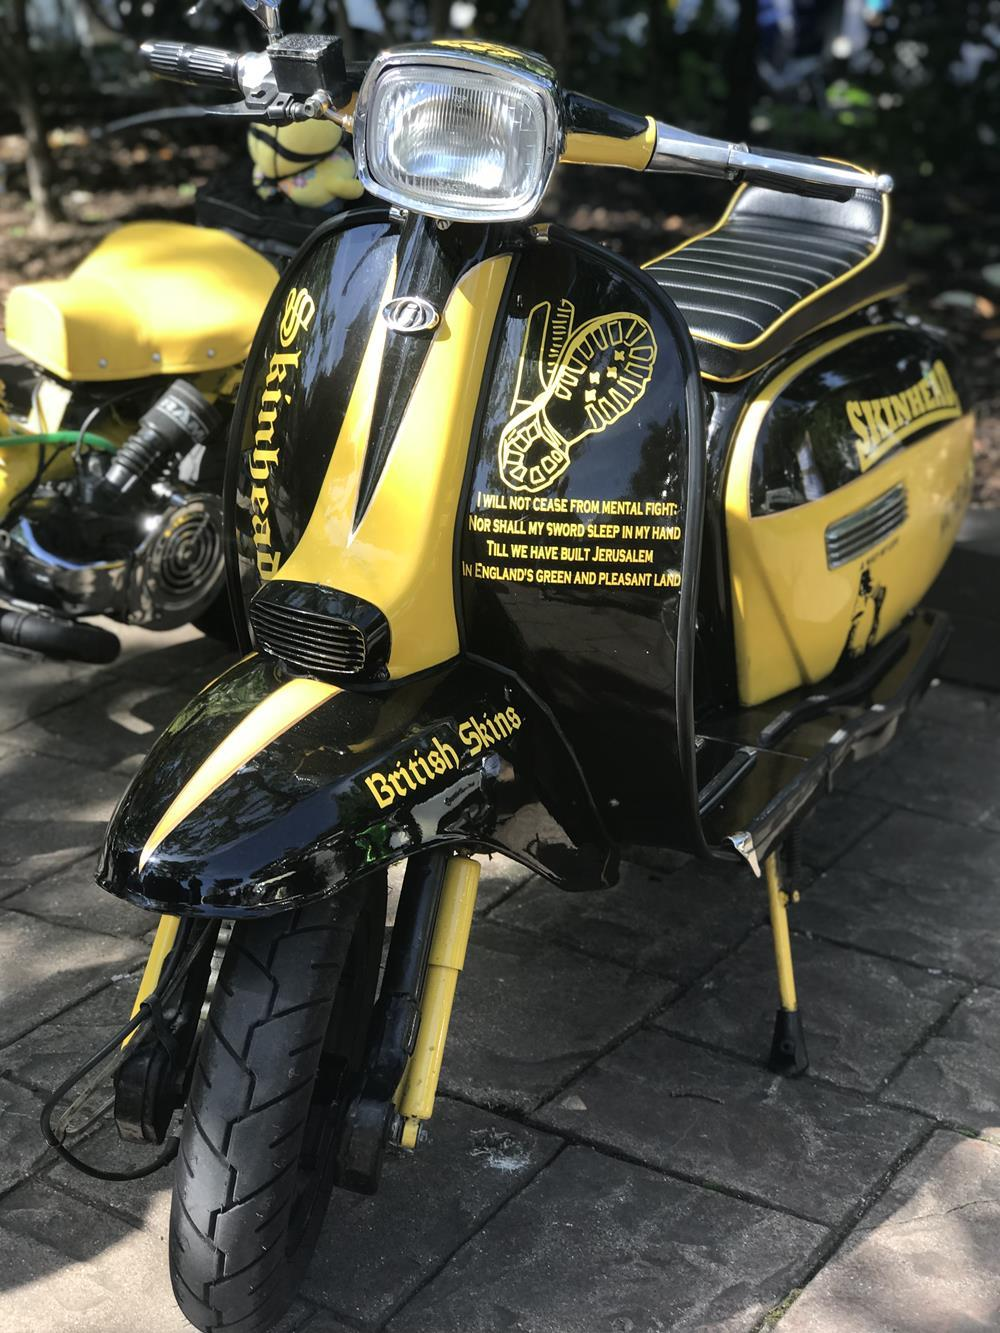 Yellow and black skinhead scooter